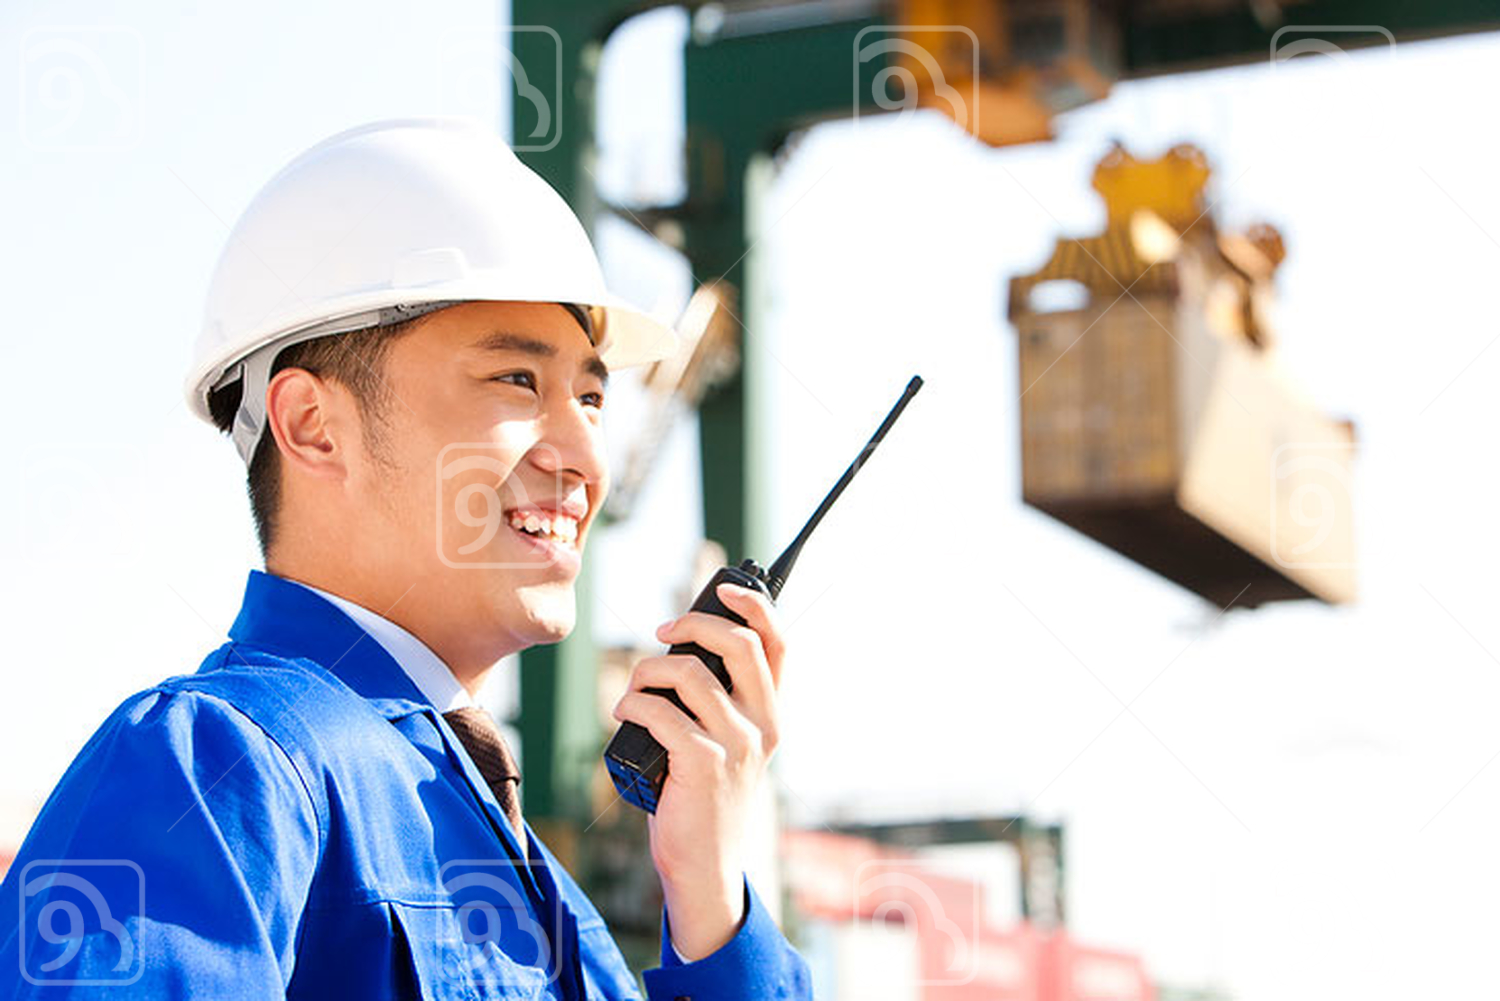 Chinese shipping industry manager directing cranes with his walkie-talkie